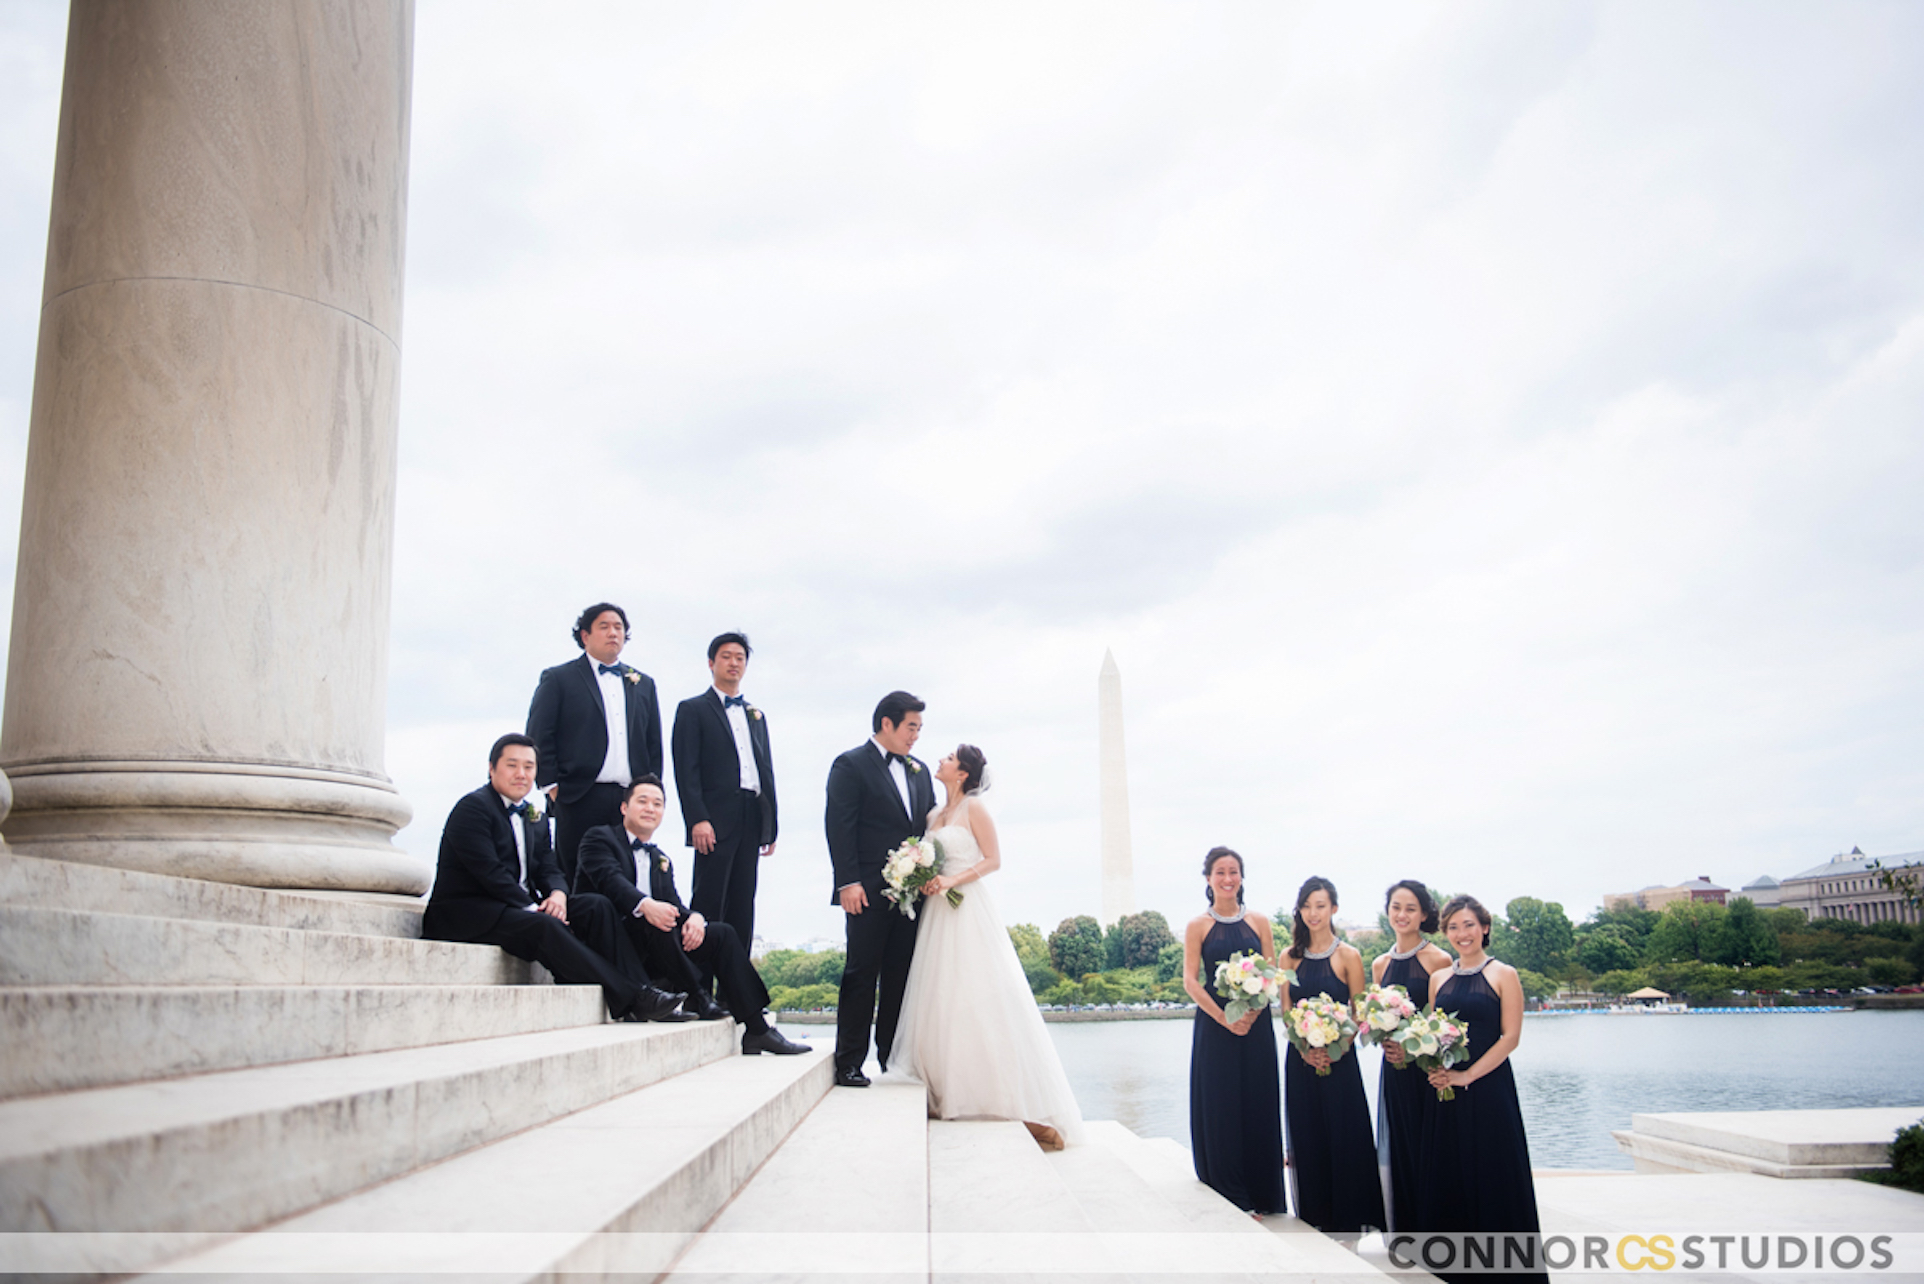 Bridal party posing on steps for picture